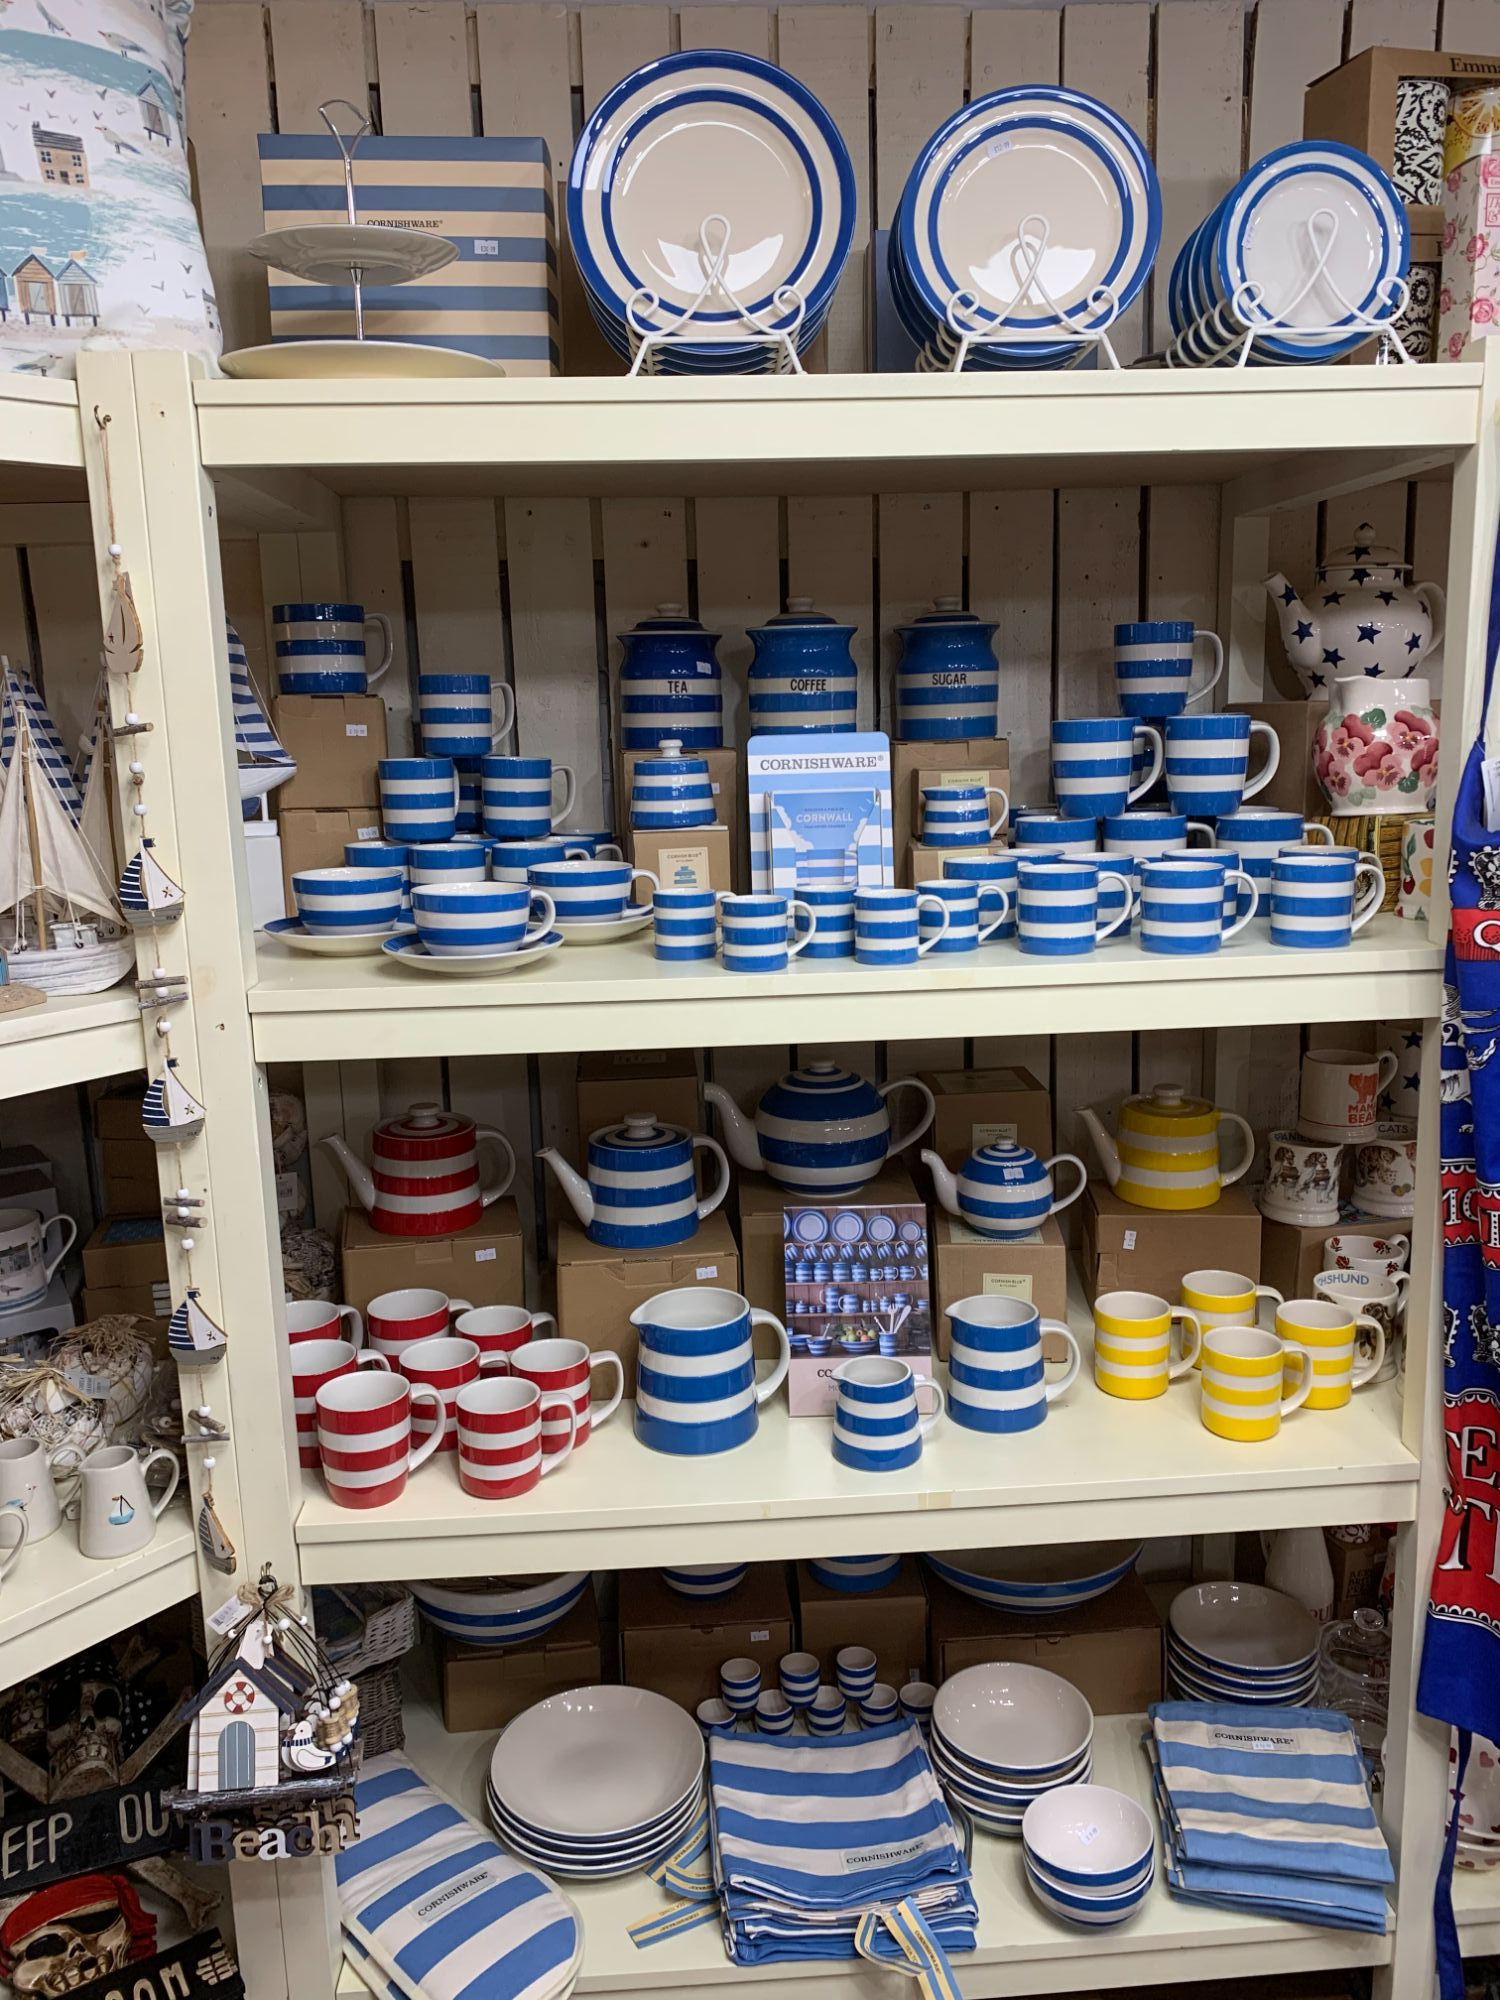 TG Green Cornishware at Out of the Blue Totnes